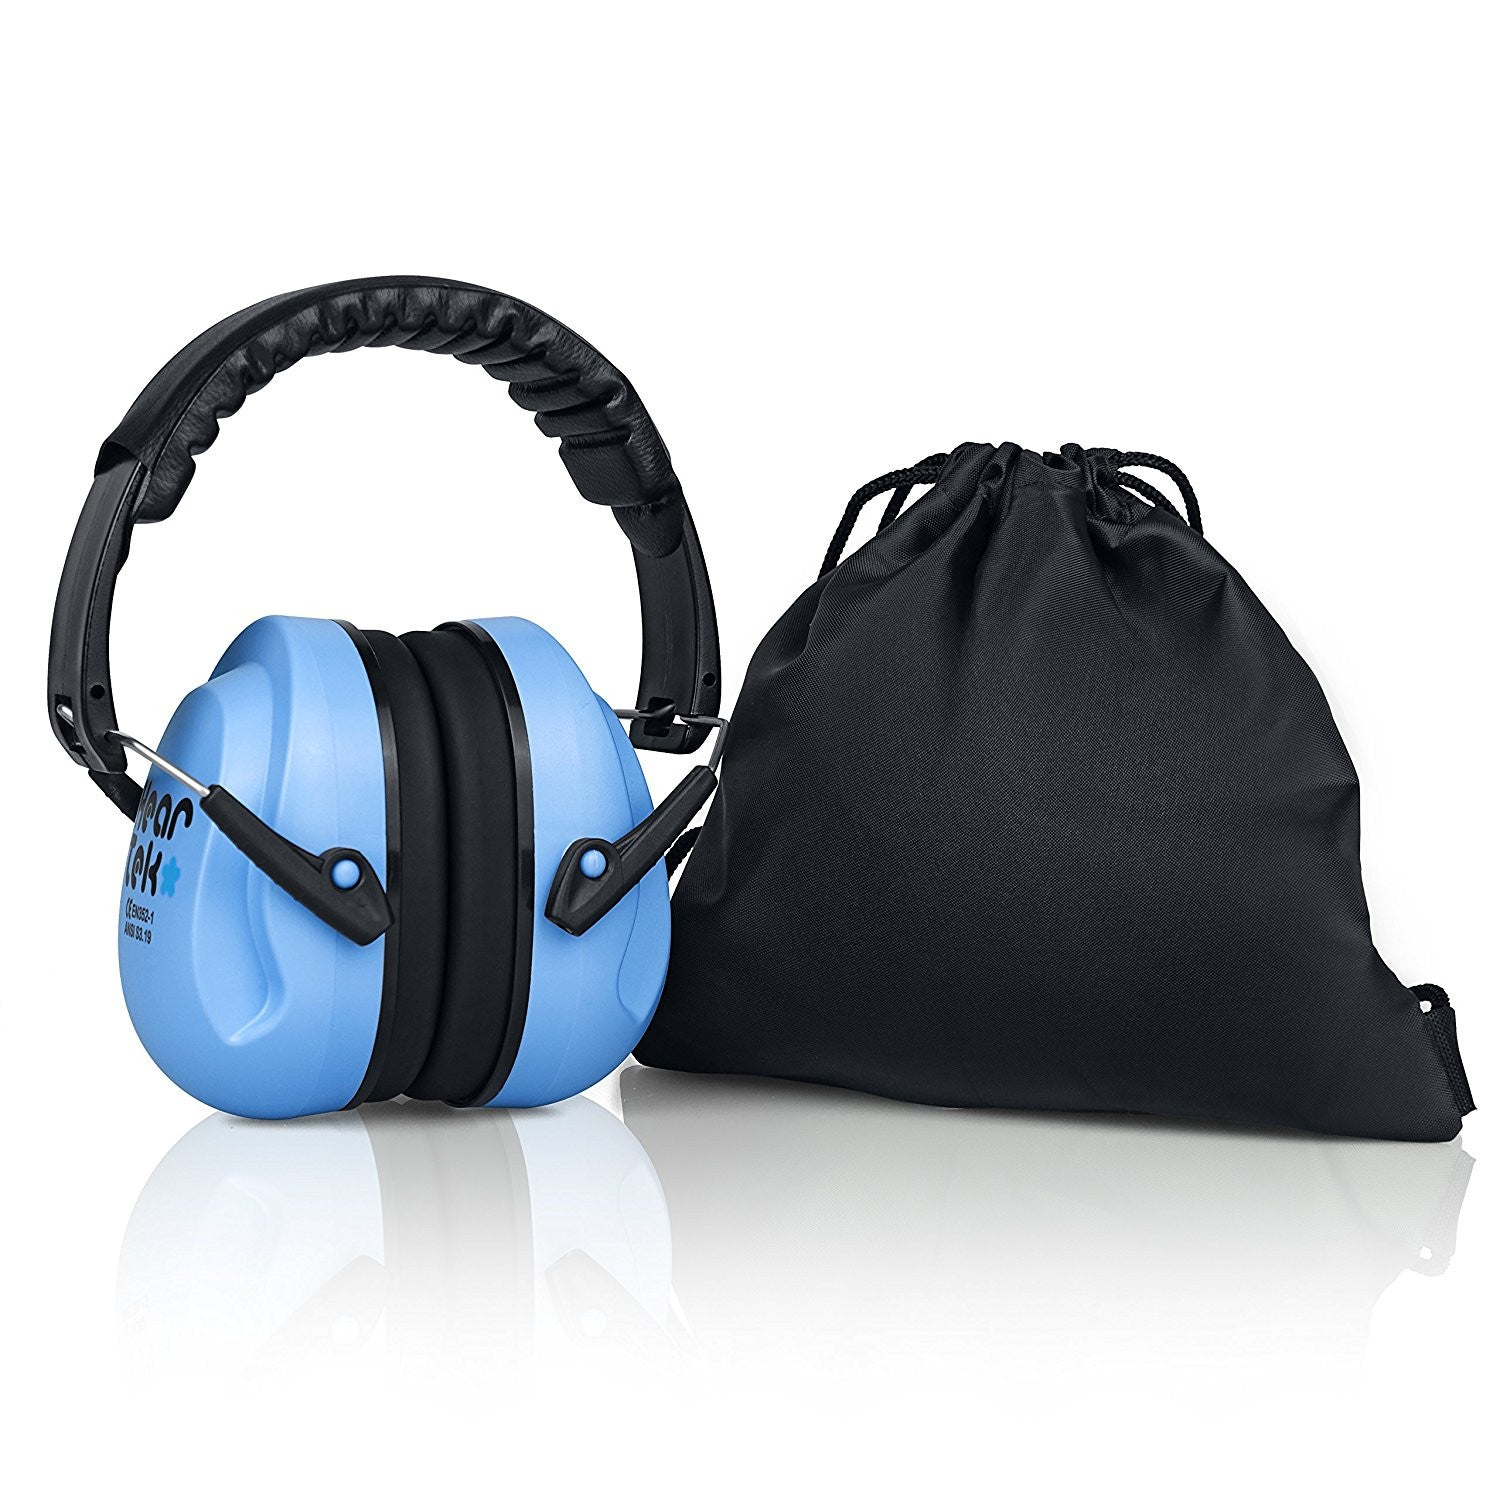 Blue HearTek Sammie Earmuffs Hearing Protection with Travel Bag